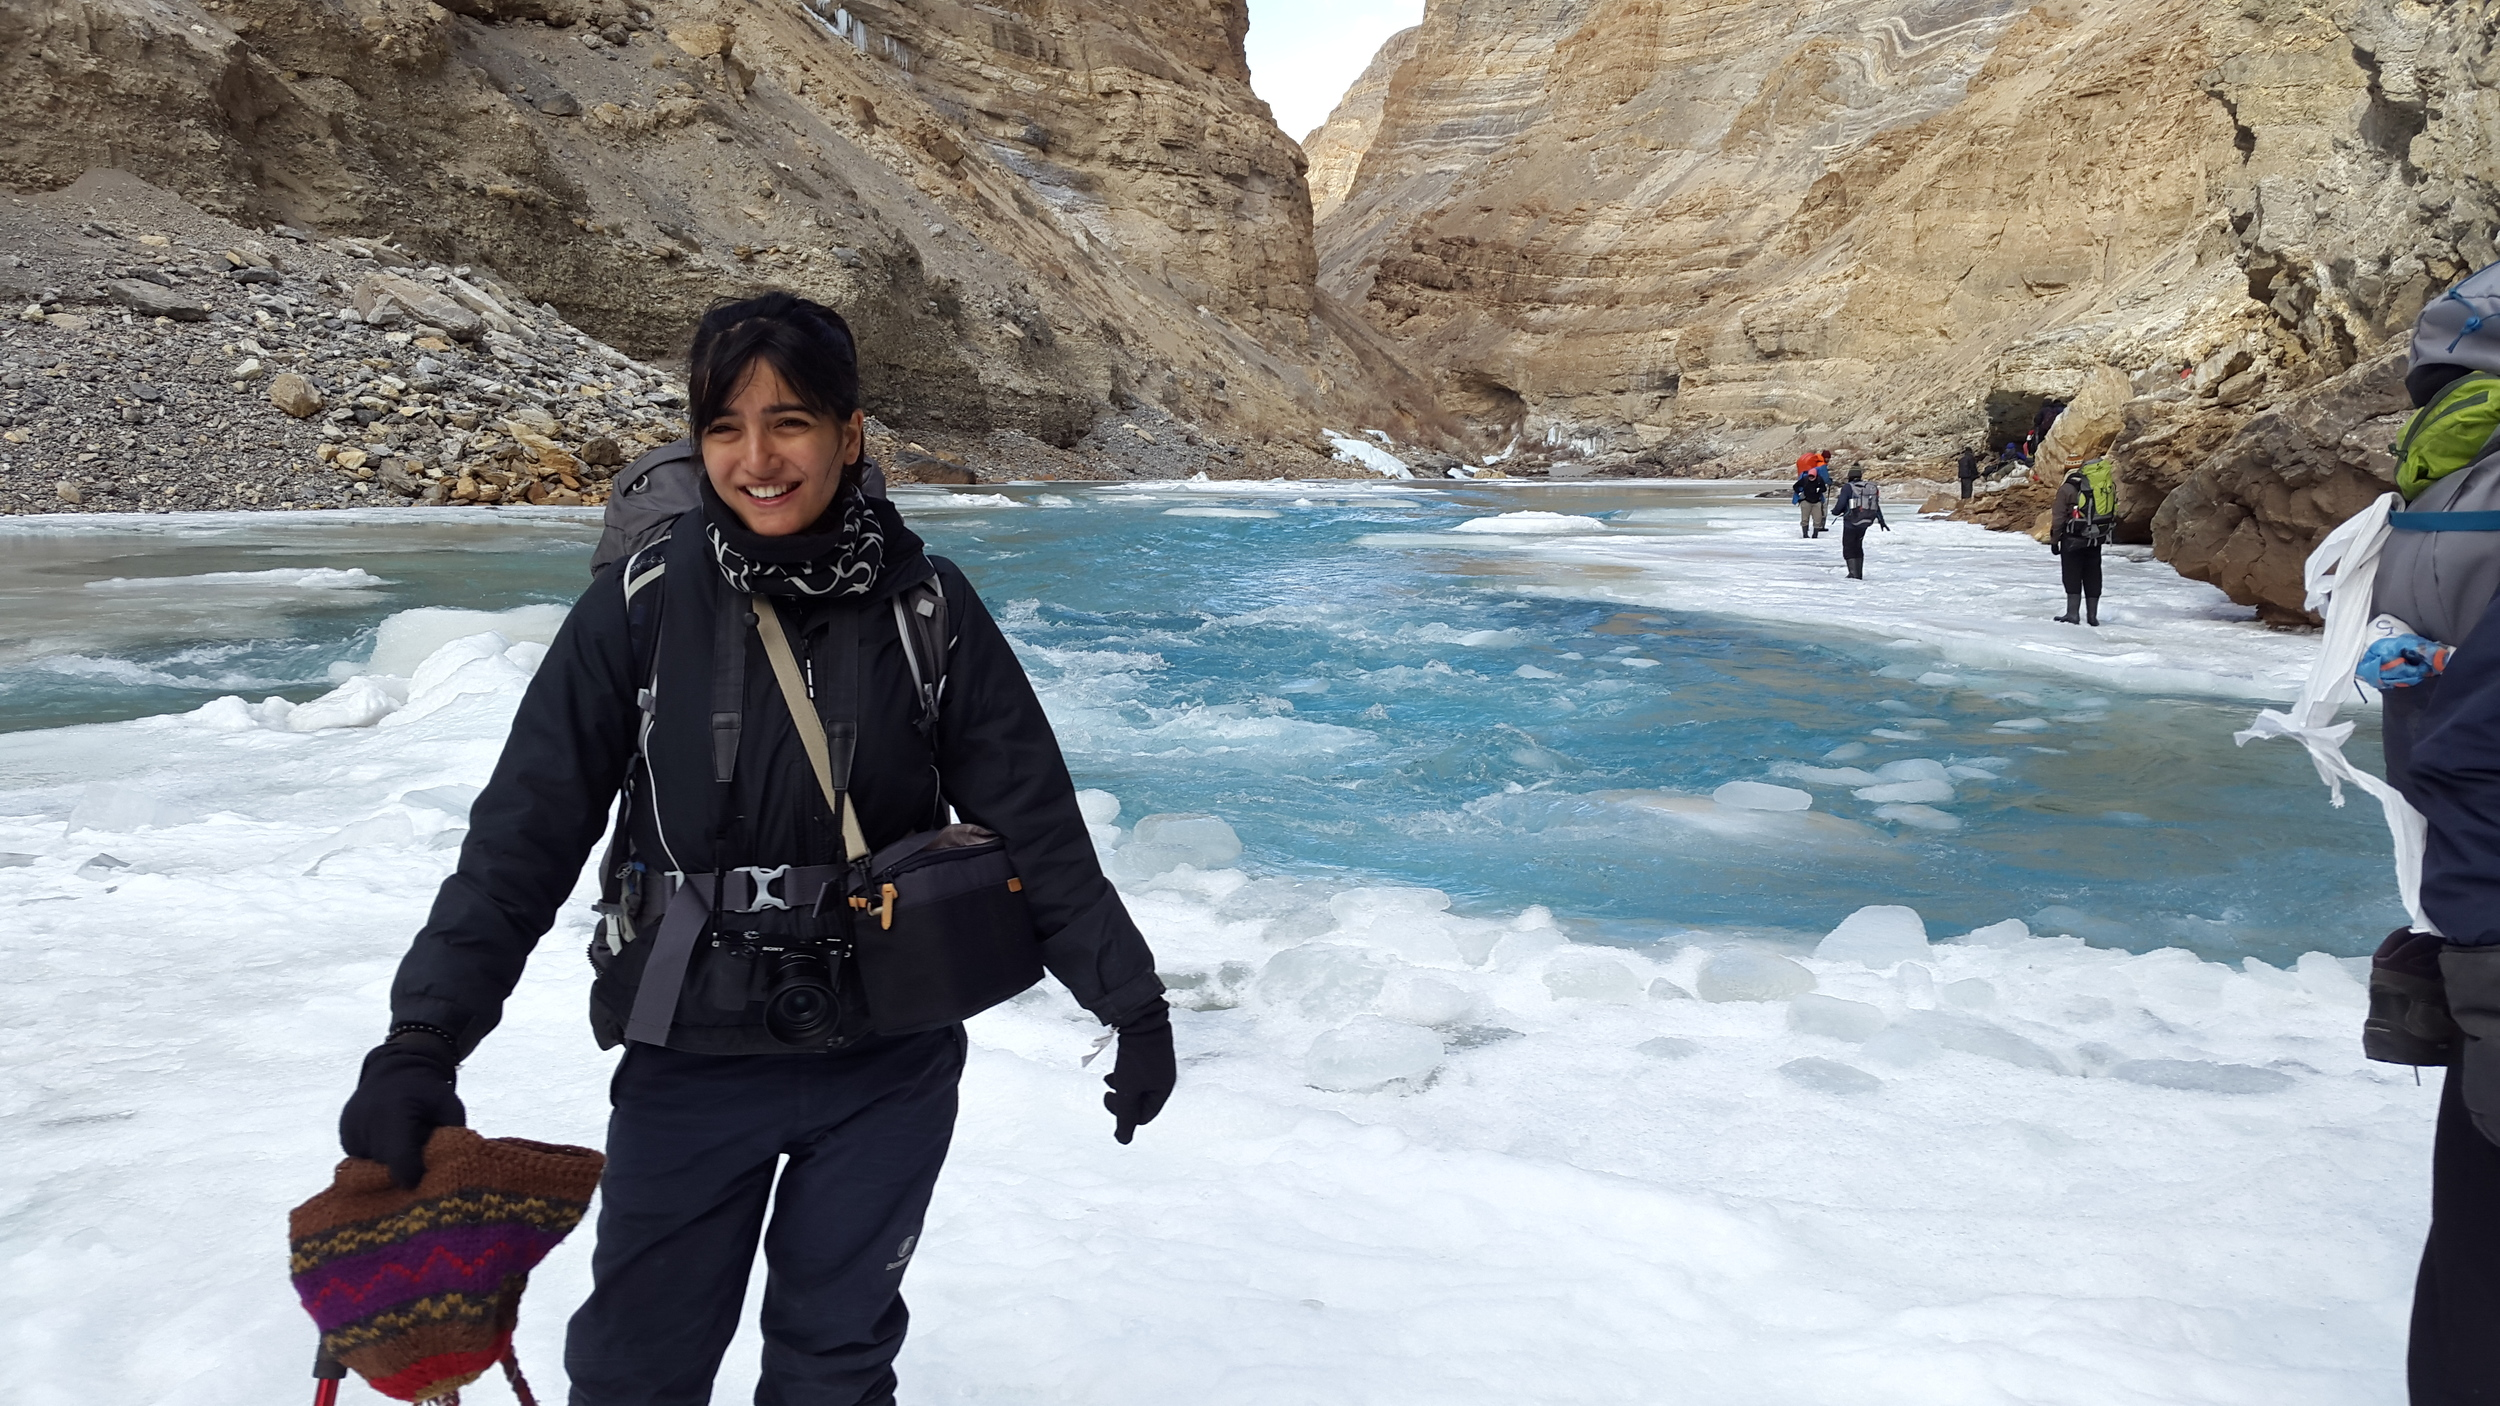 Very unflattering picture of me not knowing what to do with all these layers of clothing, protective gear and camera equipment. Truly a lost child in the Himalayas while trekking in ladakh during the chadar trek